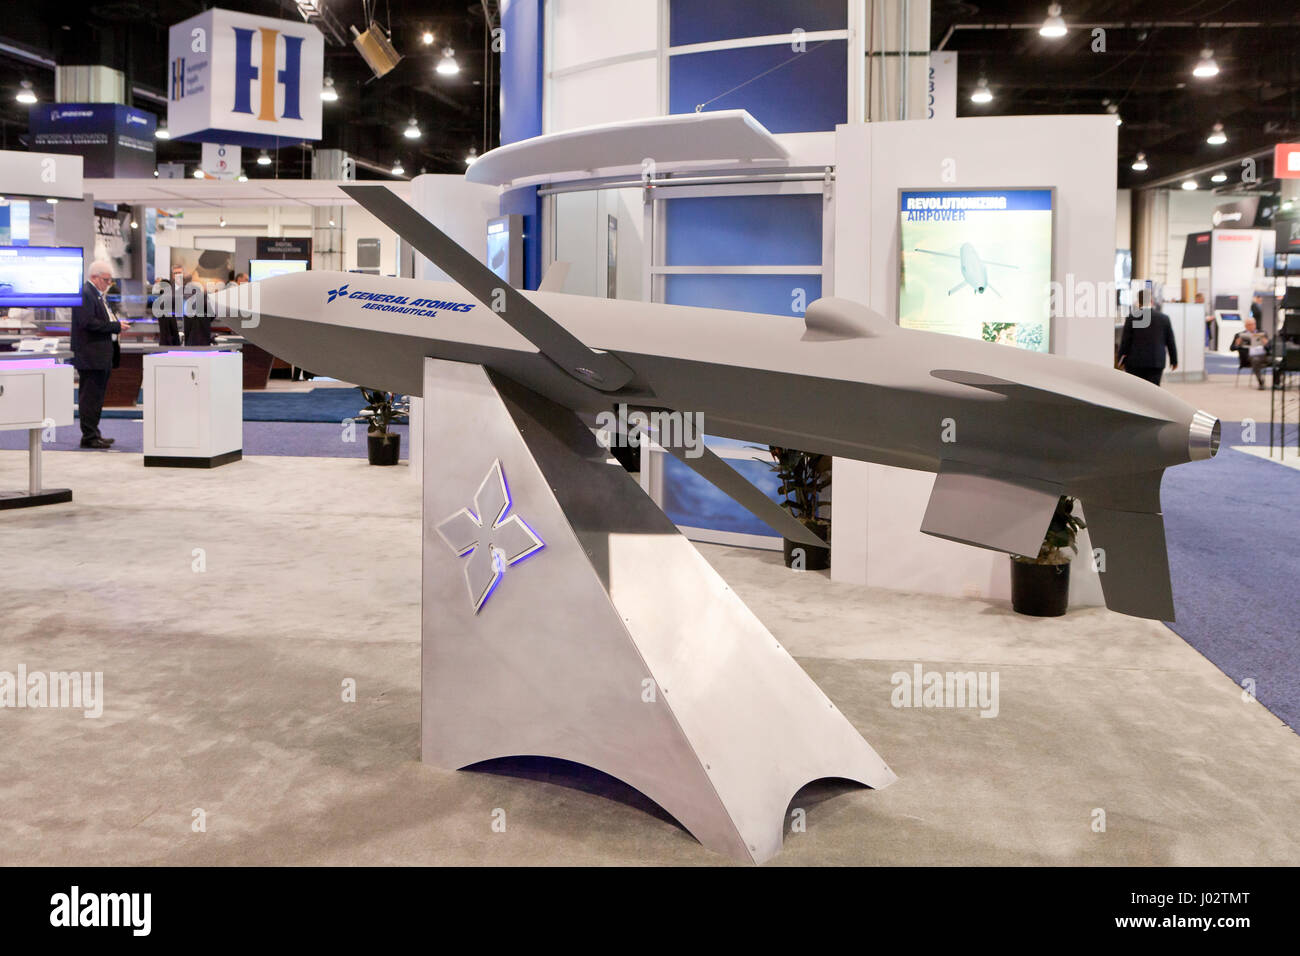 General Atomics display of UAS (Unmanned Aircraft System) concept vehicle at Sea Air Space expo  - Washington, DC - Stock Image